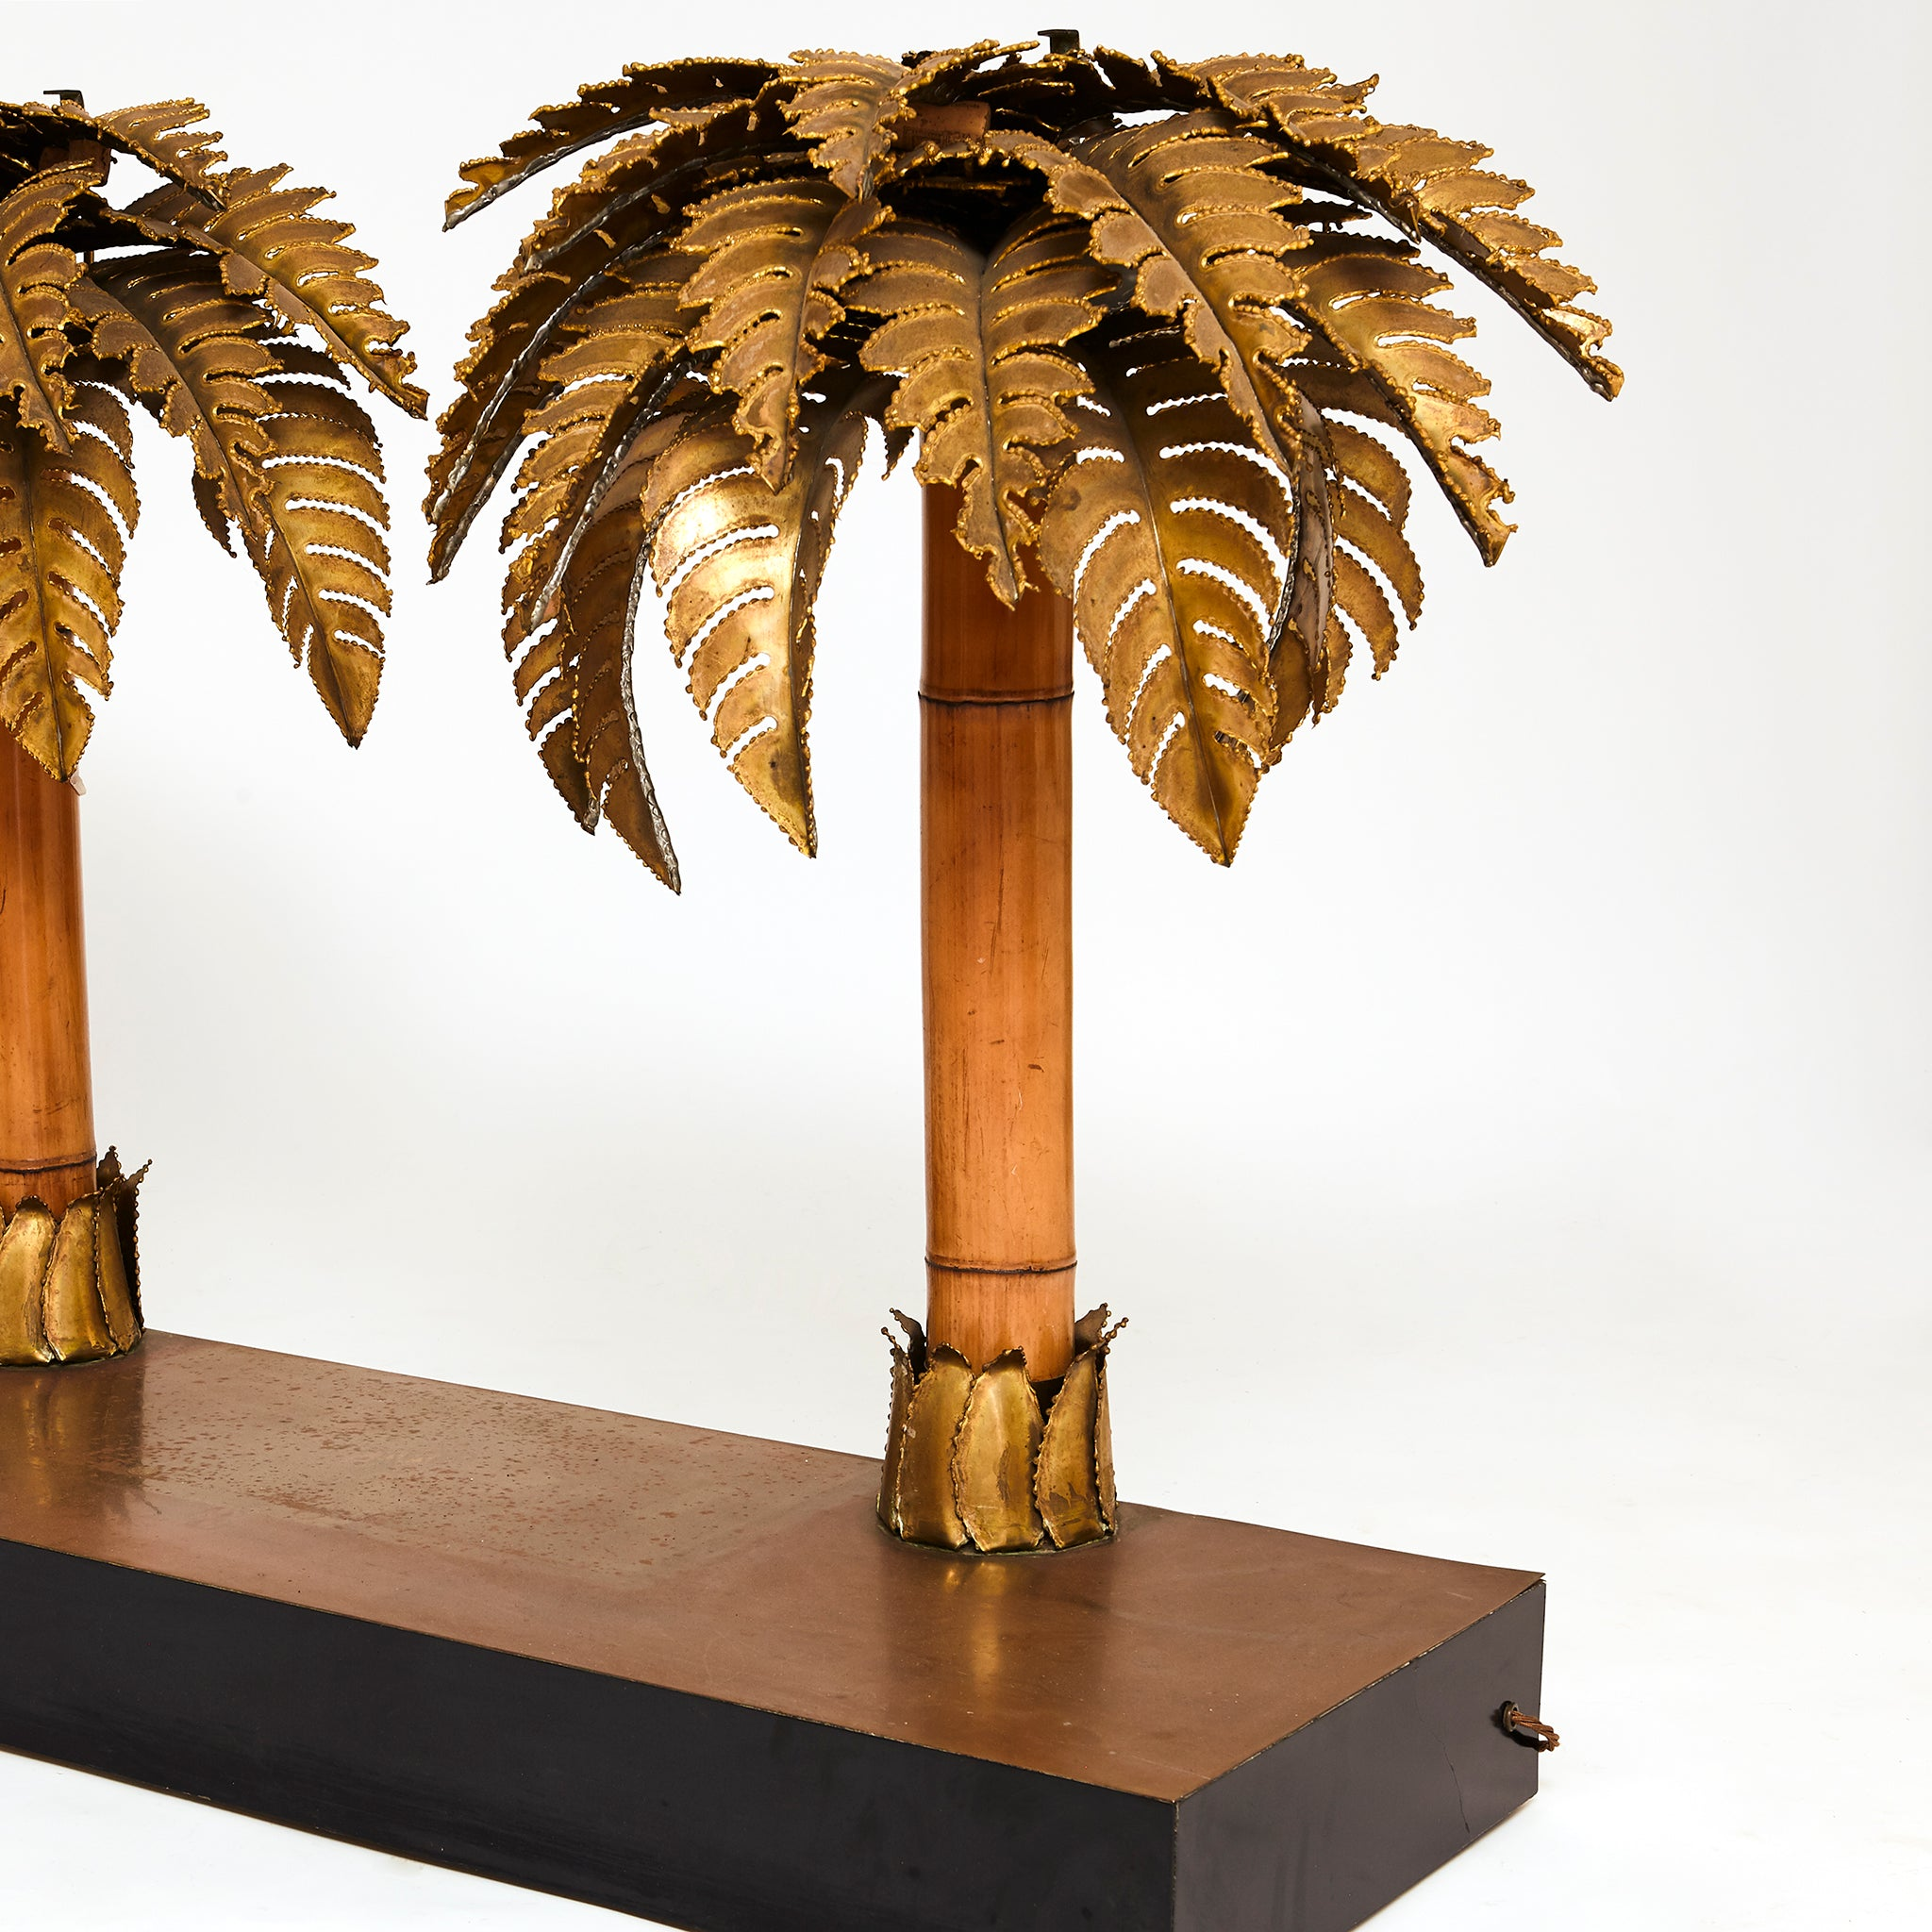 Maison Jansen illuminated console with Palm tree supports .